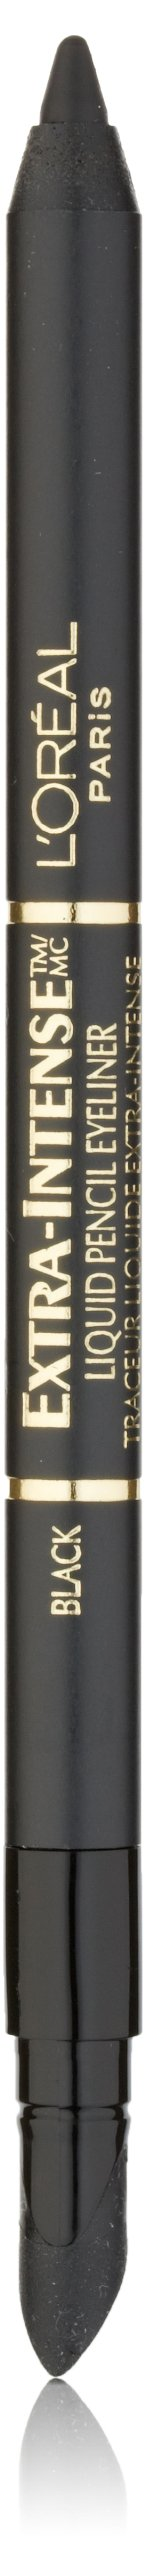 L'Oréal Paris Extra-Intense Pencil Eyeliner, Black, 0.03 oz. (Packaging May Vary)